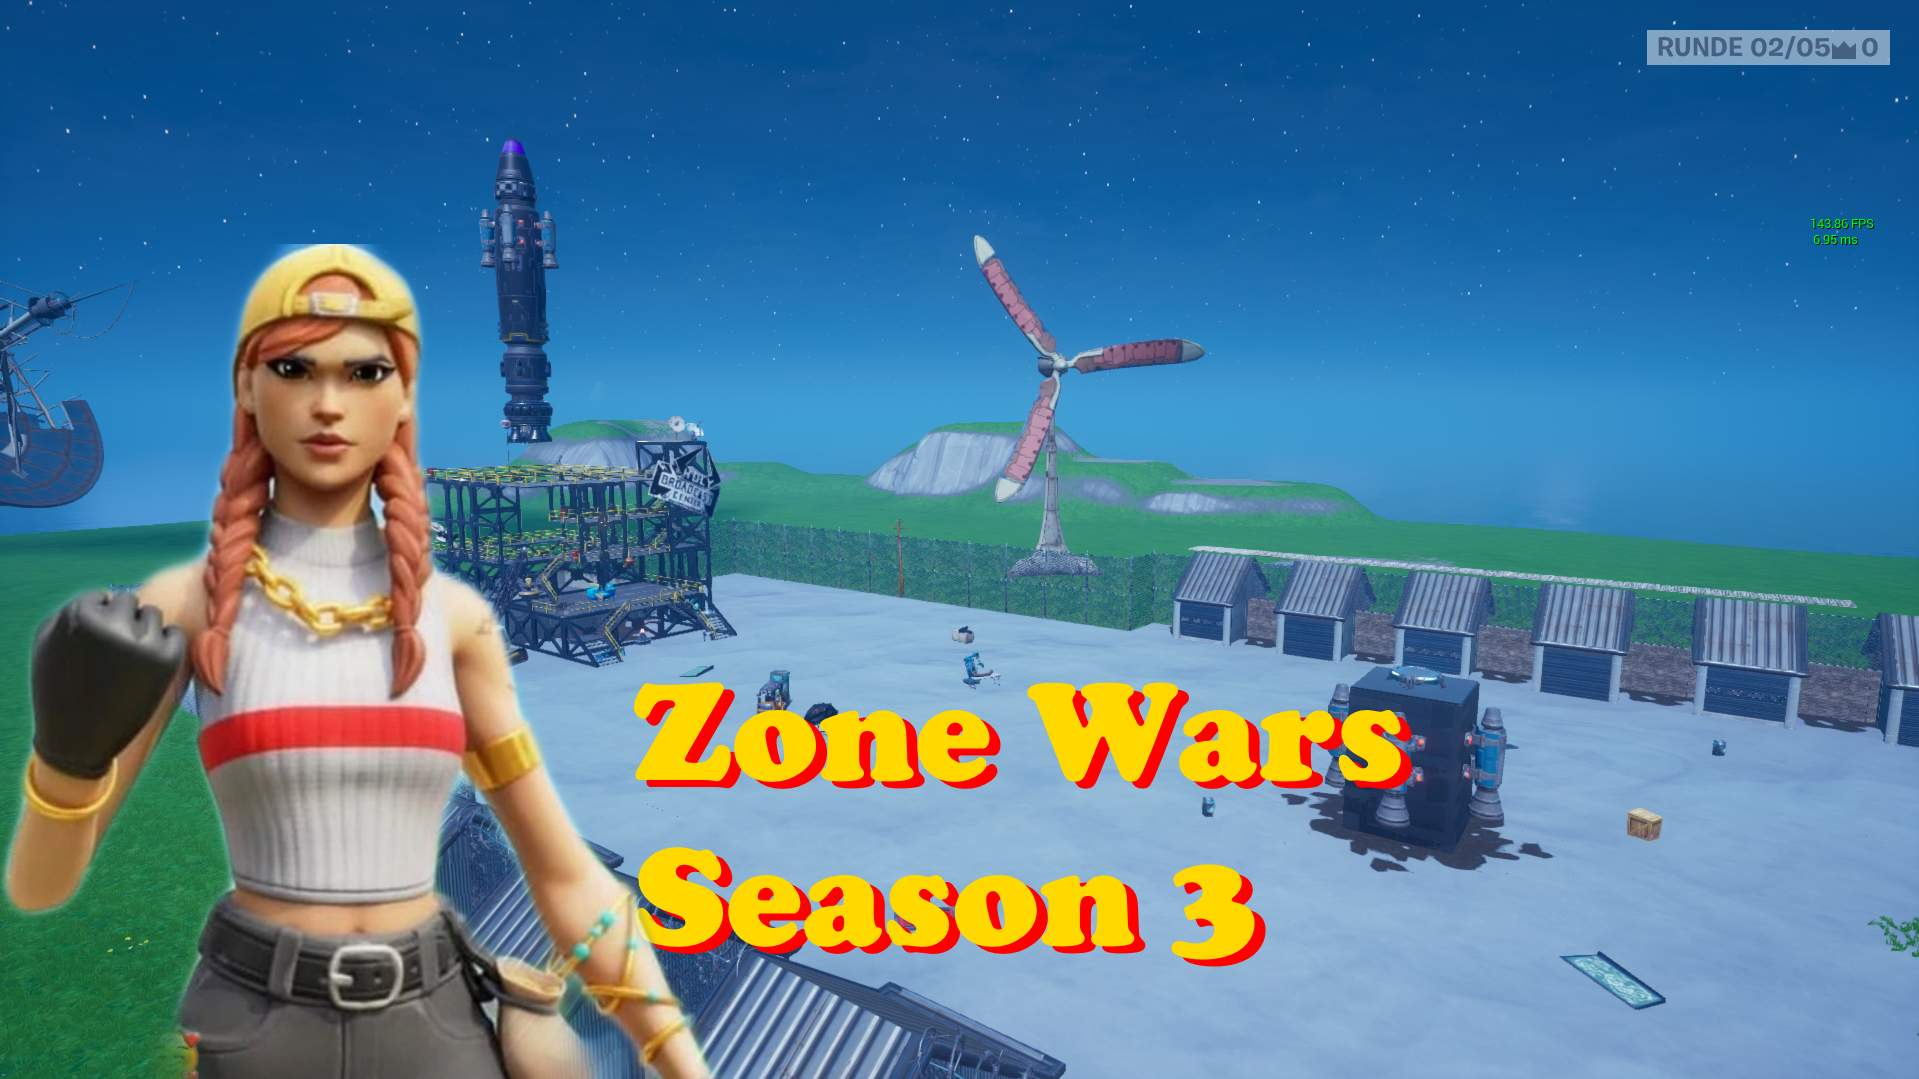 ROCKET START ZONE WARS SEASON 3